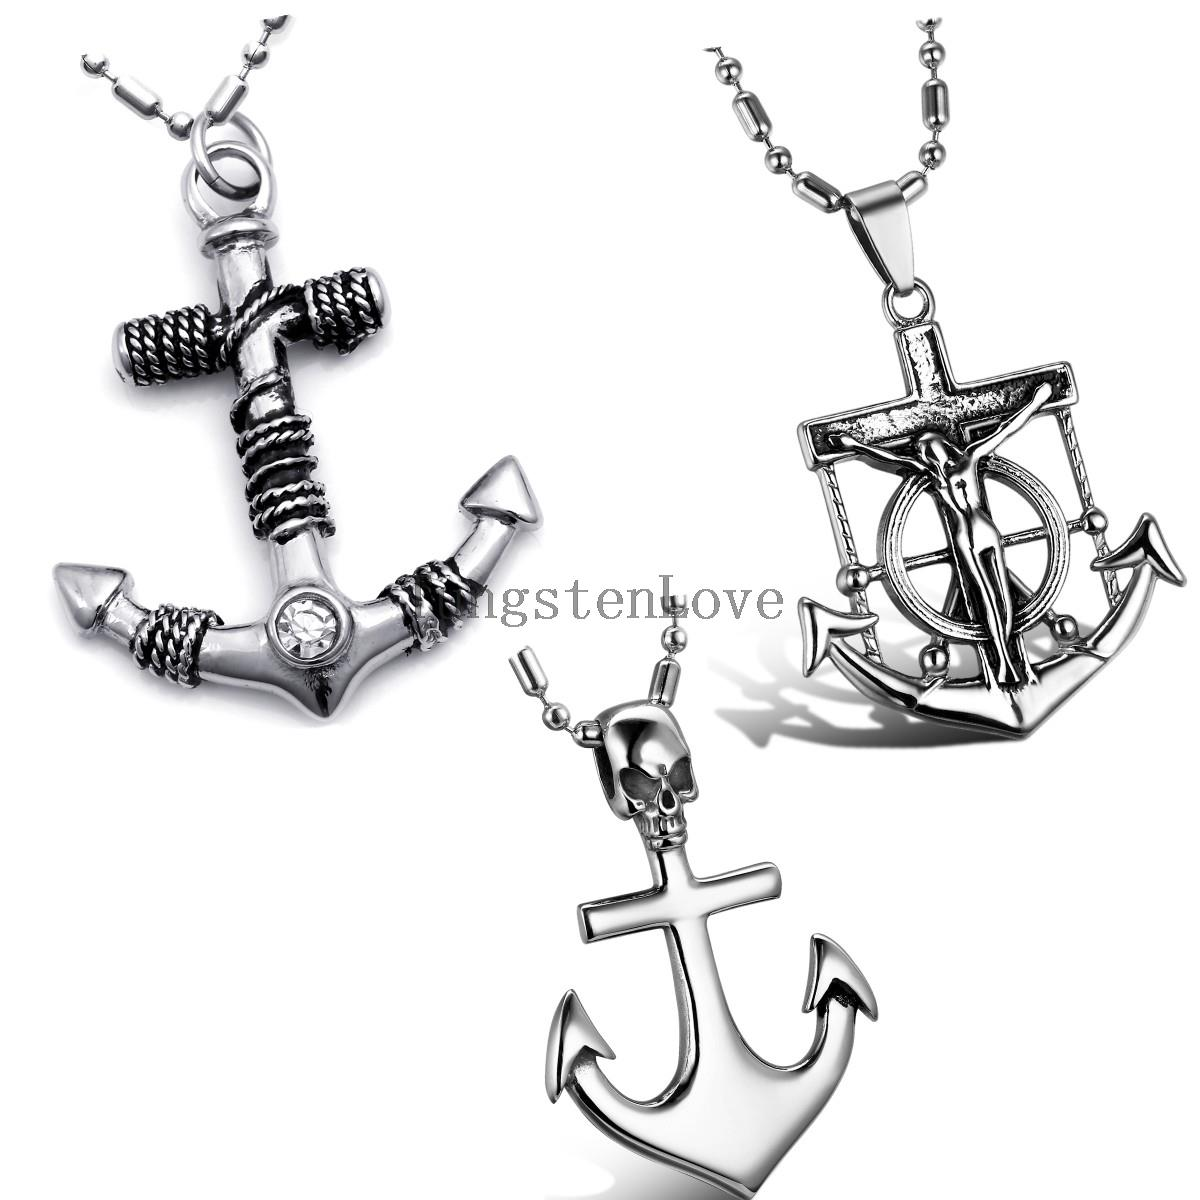 "Wholesale Stainless Steel Pirate Skull Anchor Cross Pendant Necklace Birthday Halloween Gift for Men 22"" Chain collar hombre(China (Mainland))"